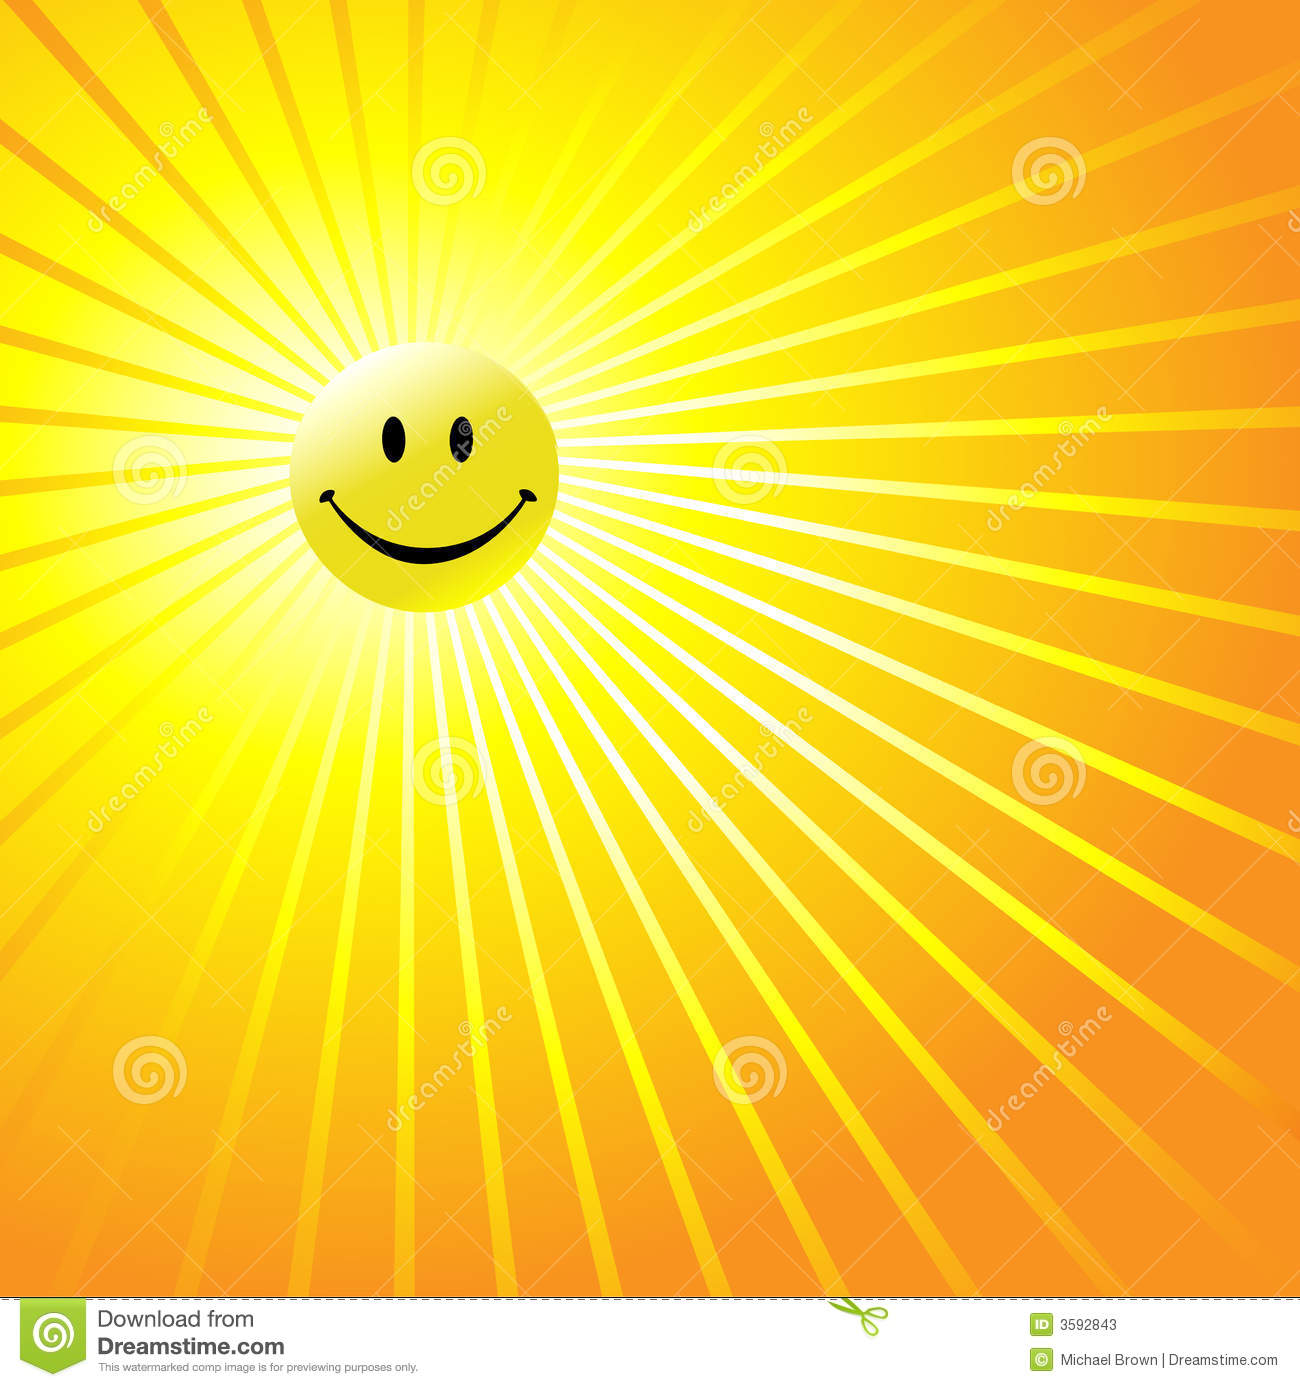 good morning smiley face images